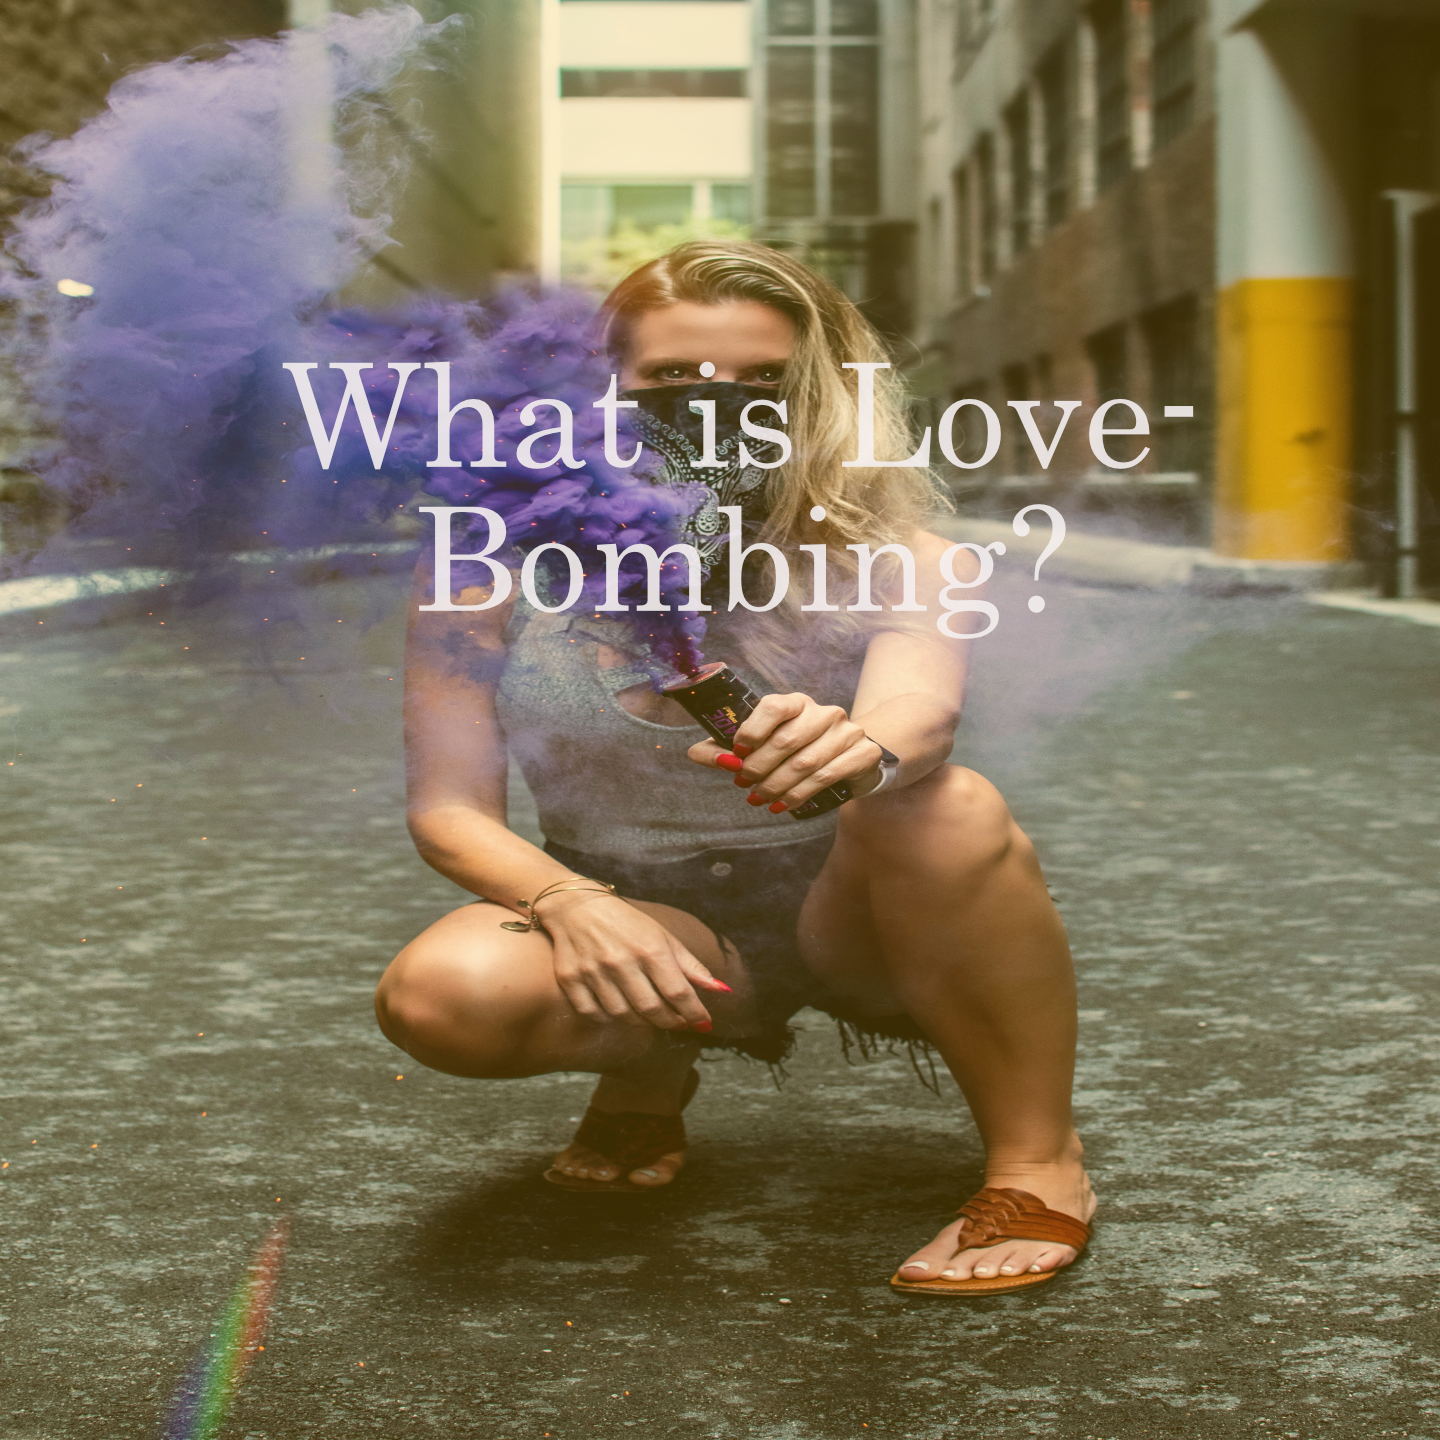 What is 'Love-Bombing' & How do you Heal from it?